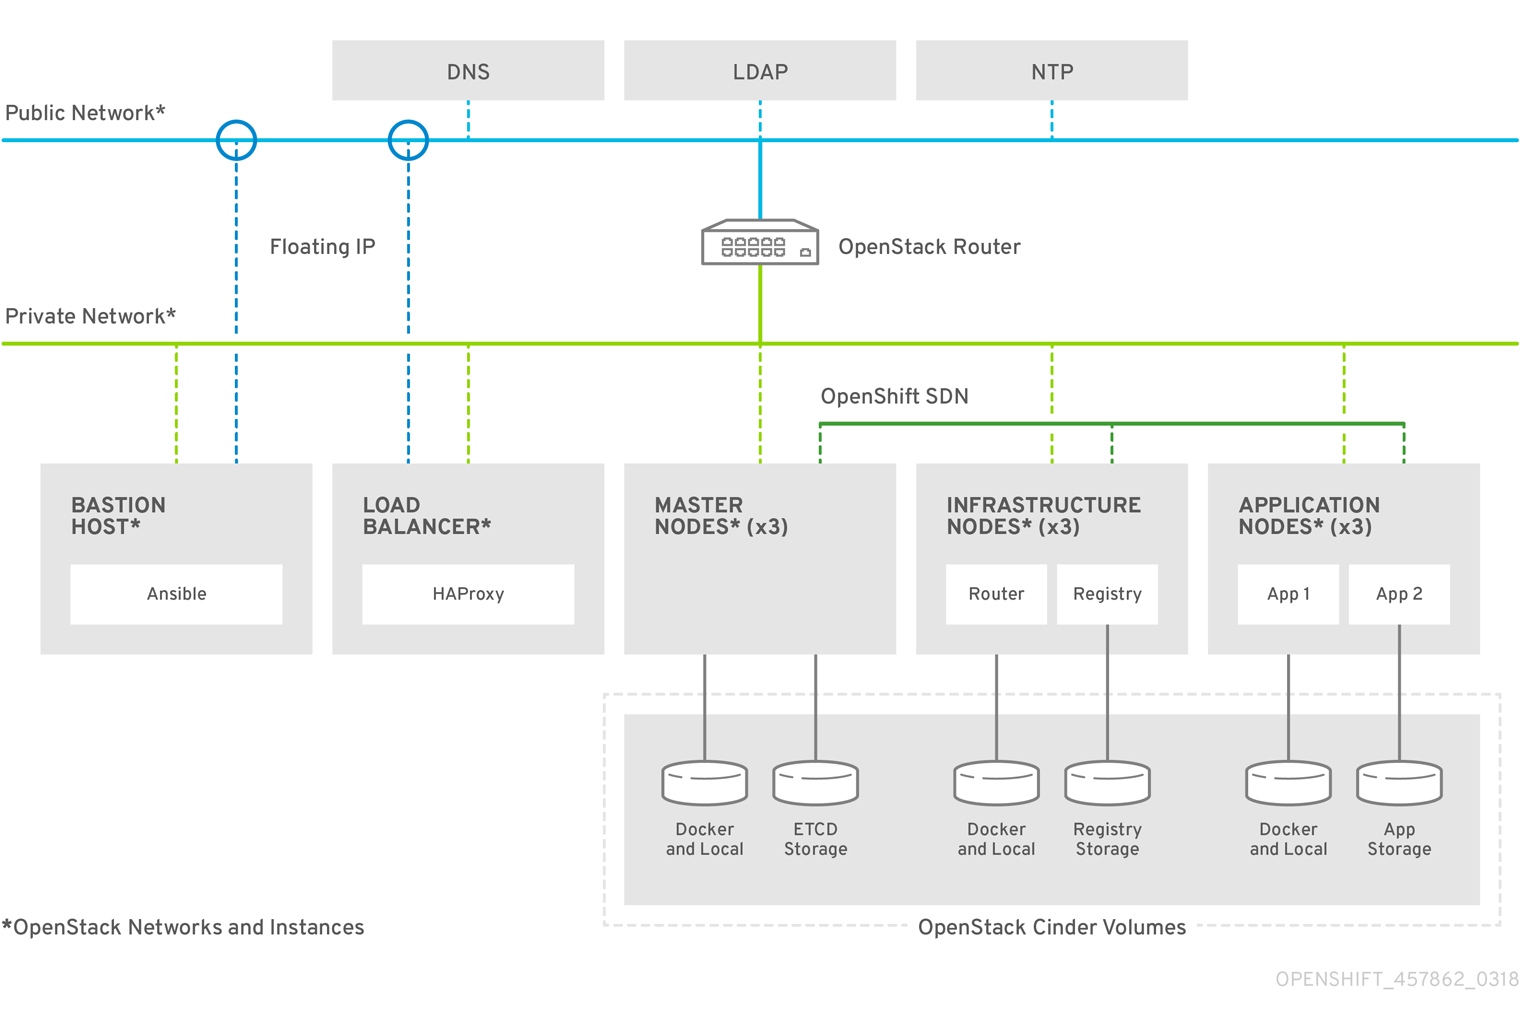 OpenShift ContainerPlatform RA Topology 457862 0318